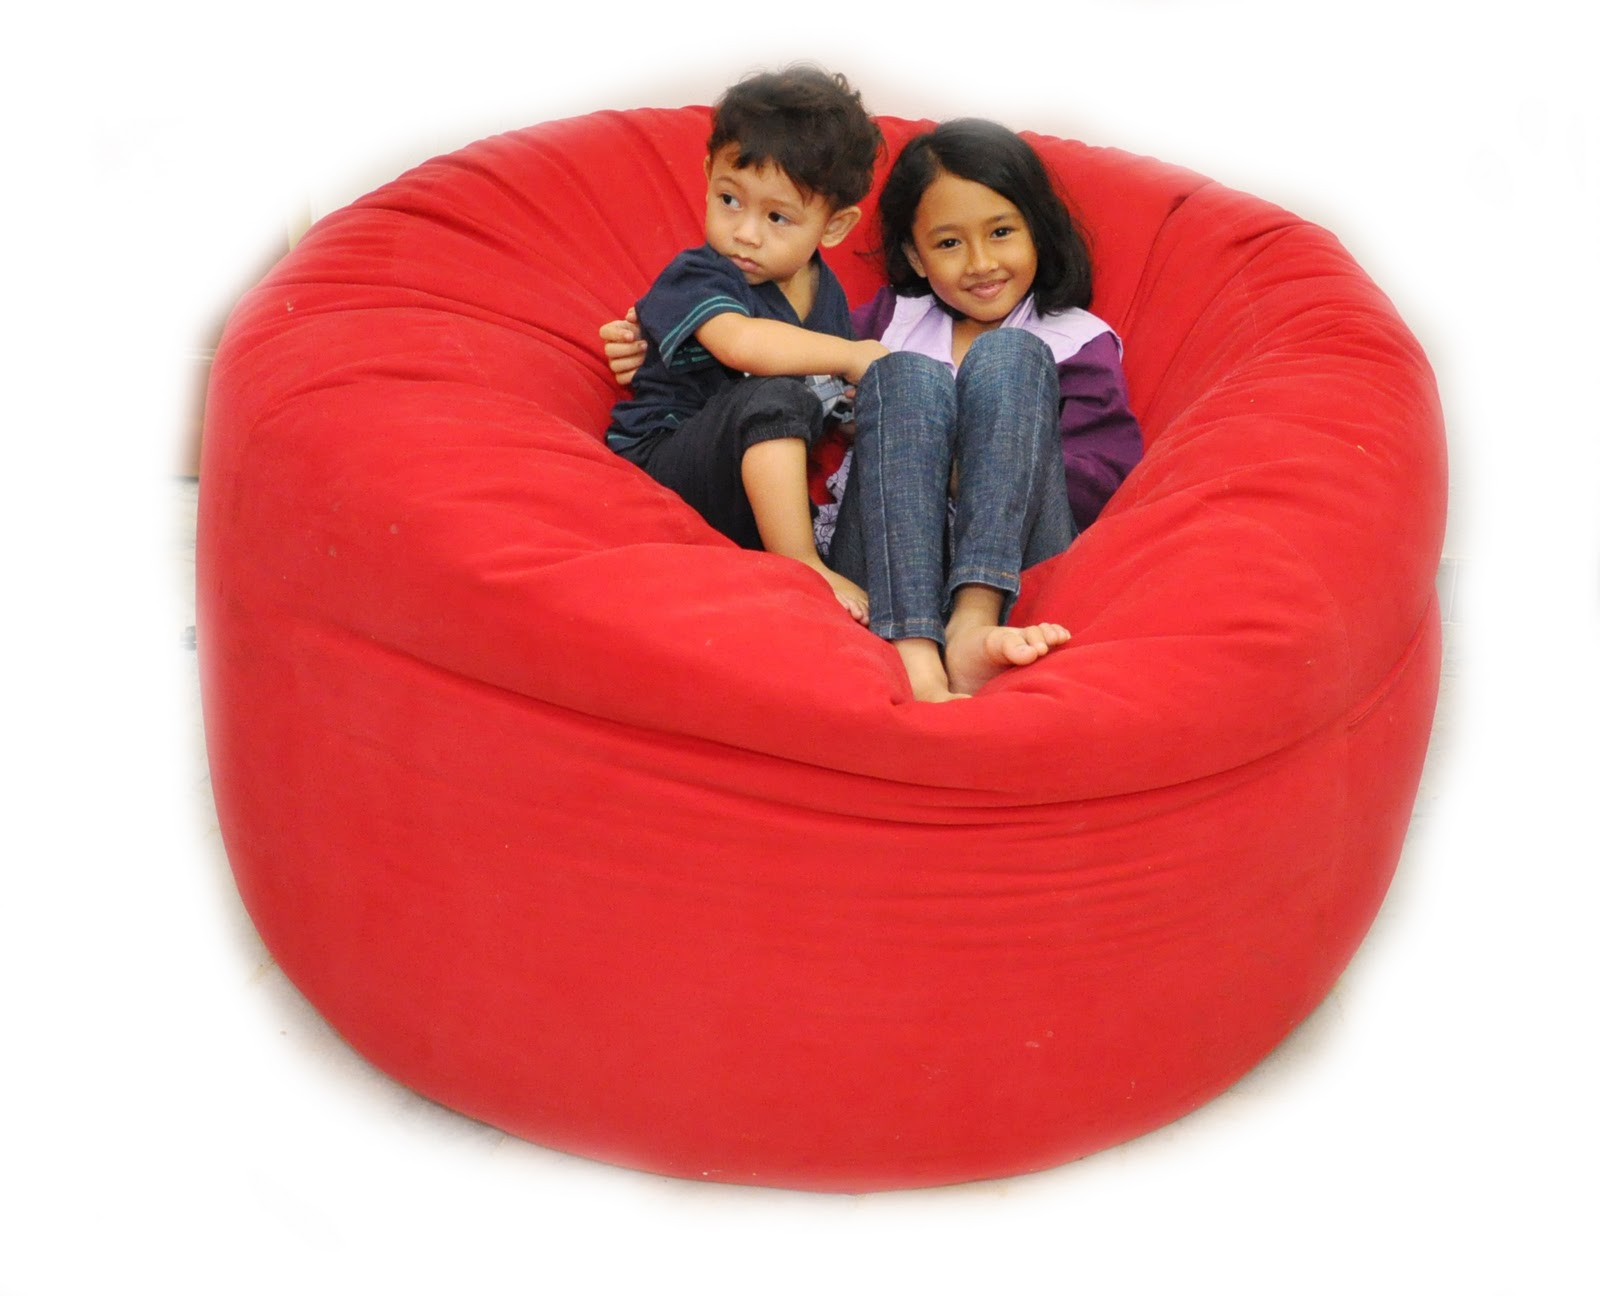 Wondrous Beanbag Chair Bean Bag Sultan Size L Bralicious Painted Fabric Chair Ideas Braliciousco